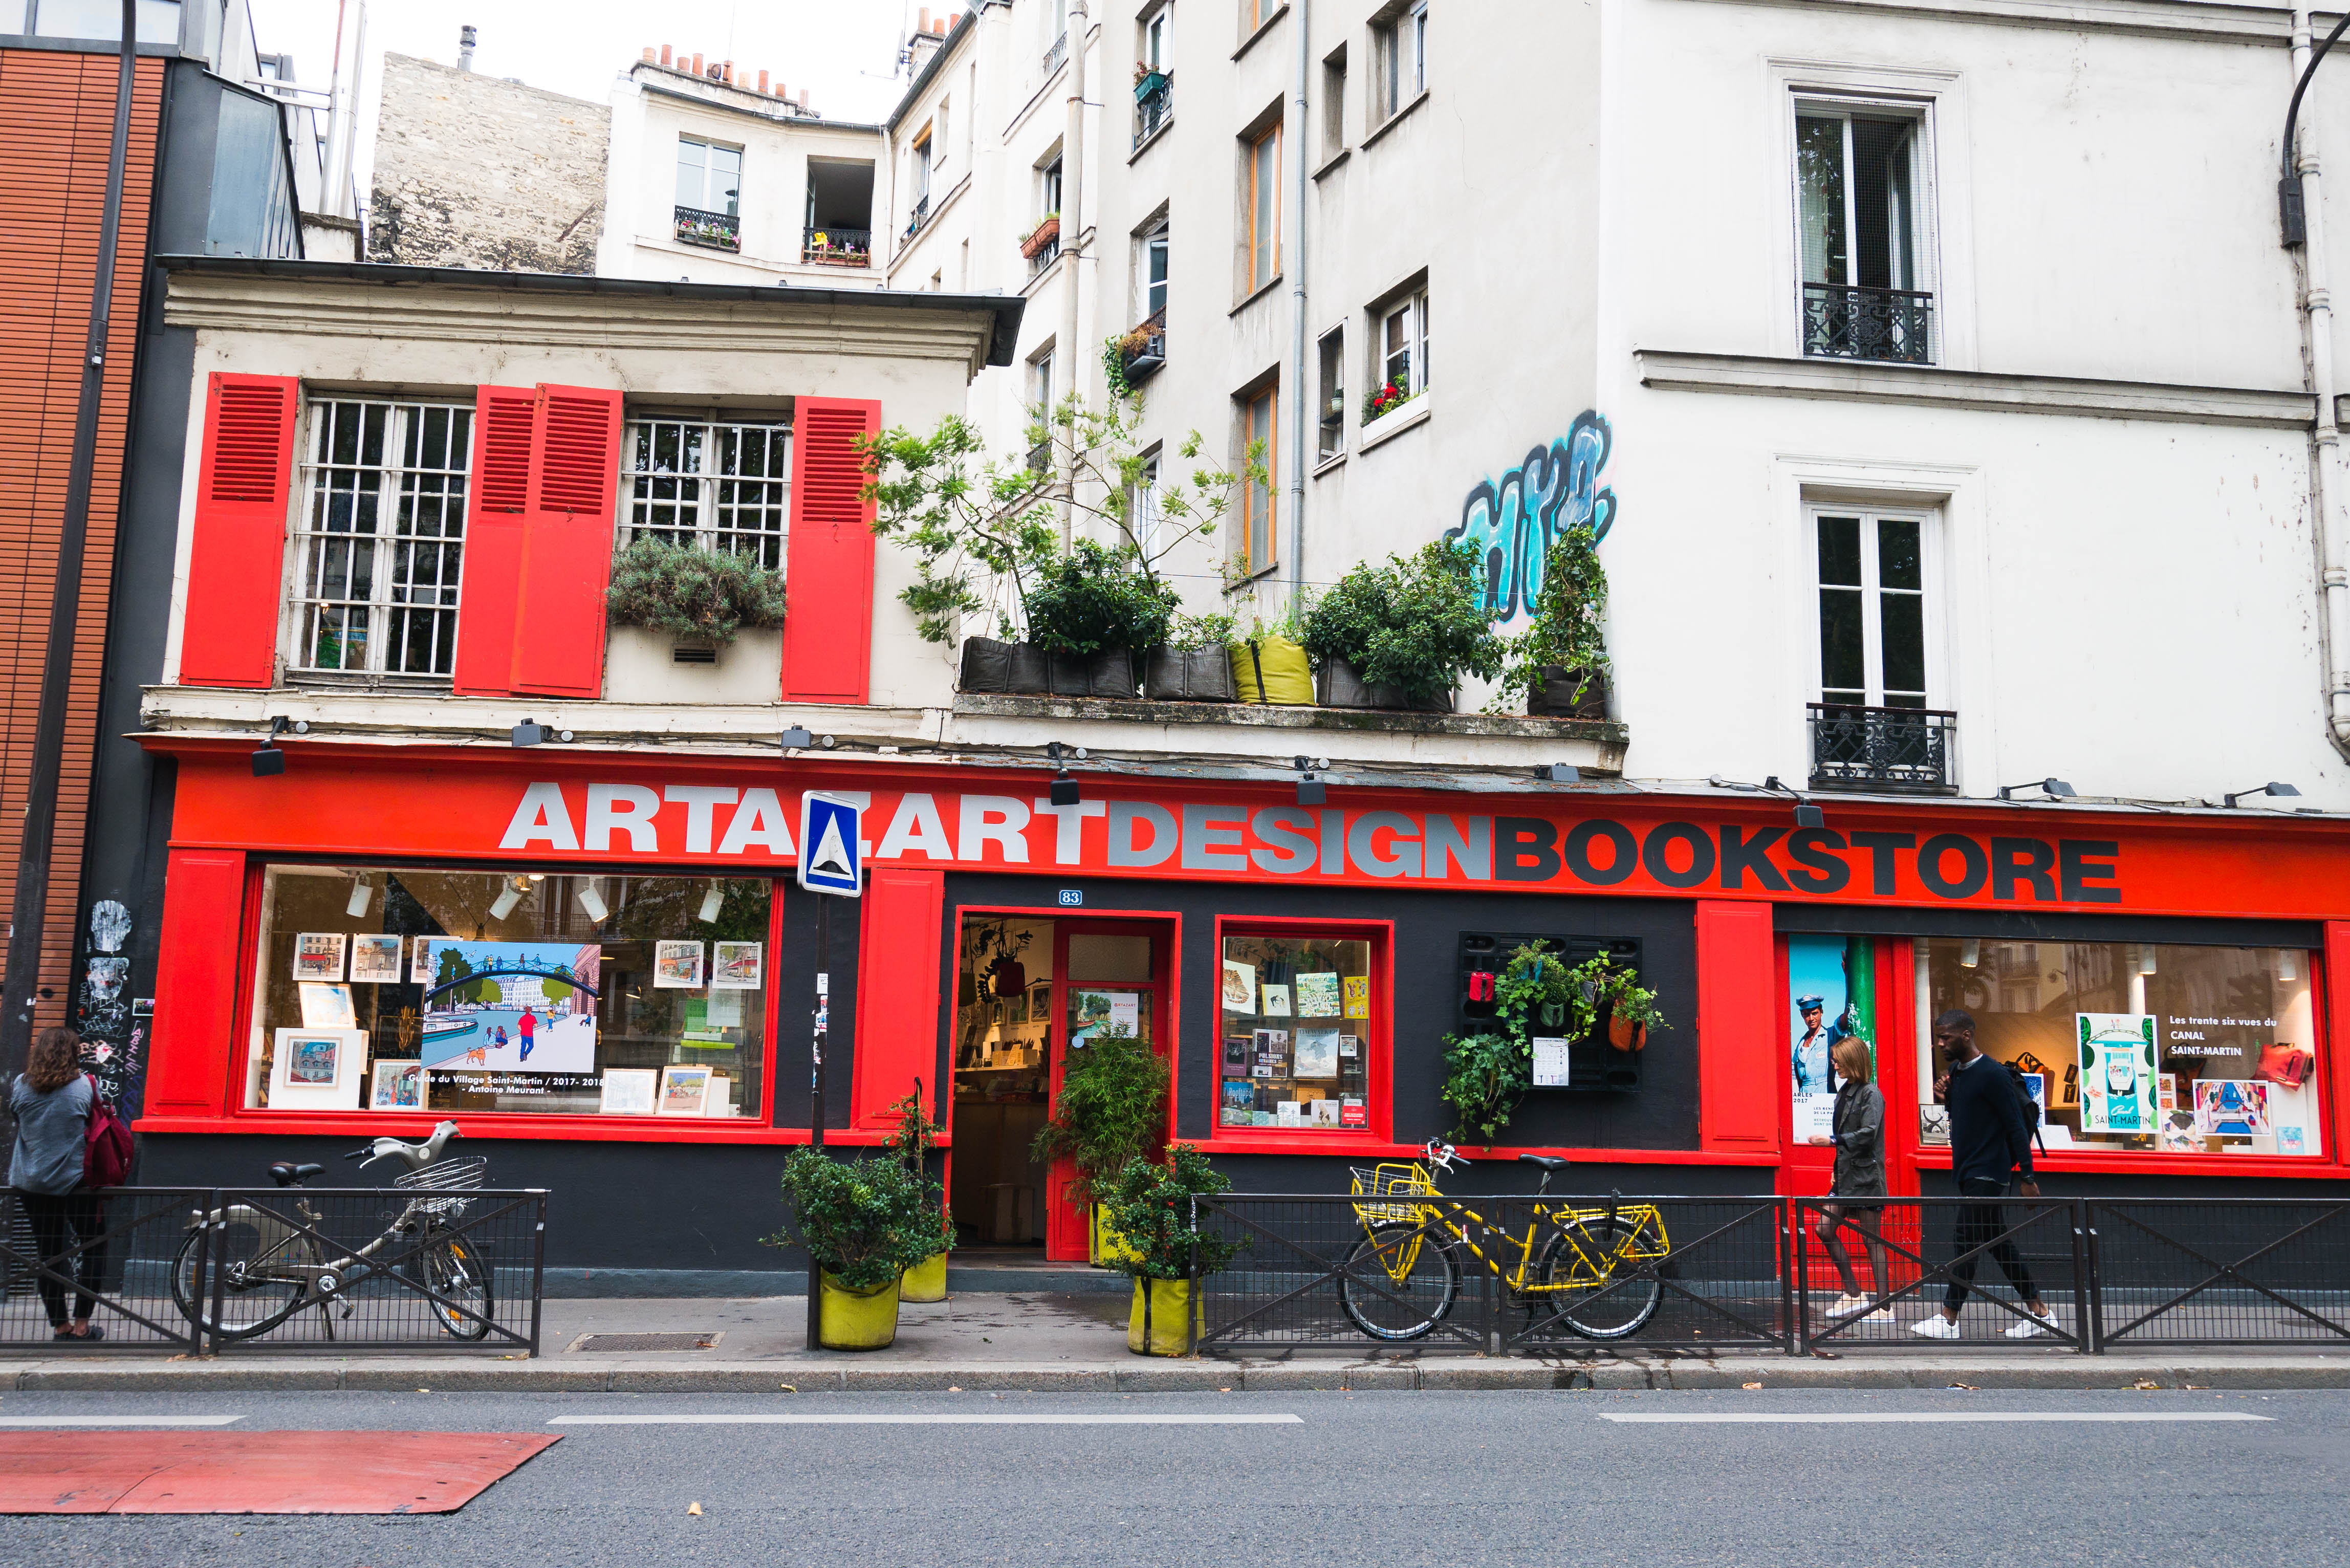 Artazart design book store Paris